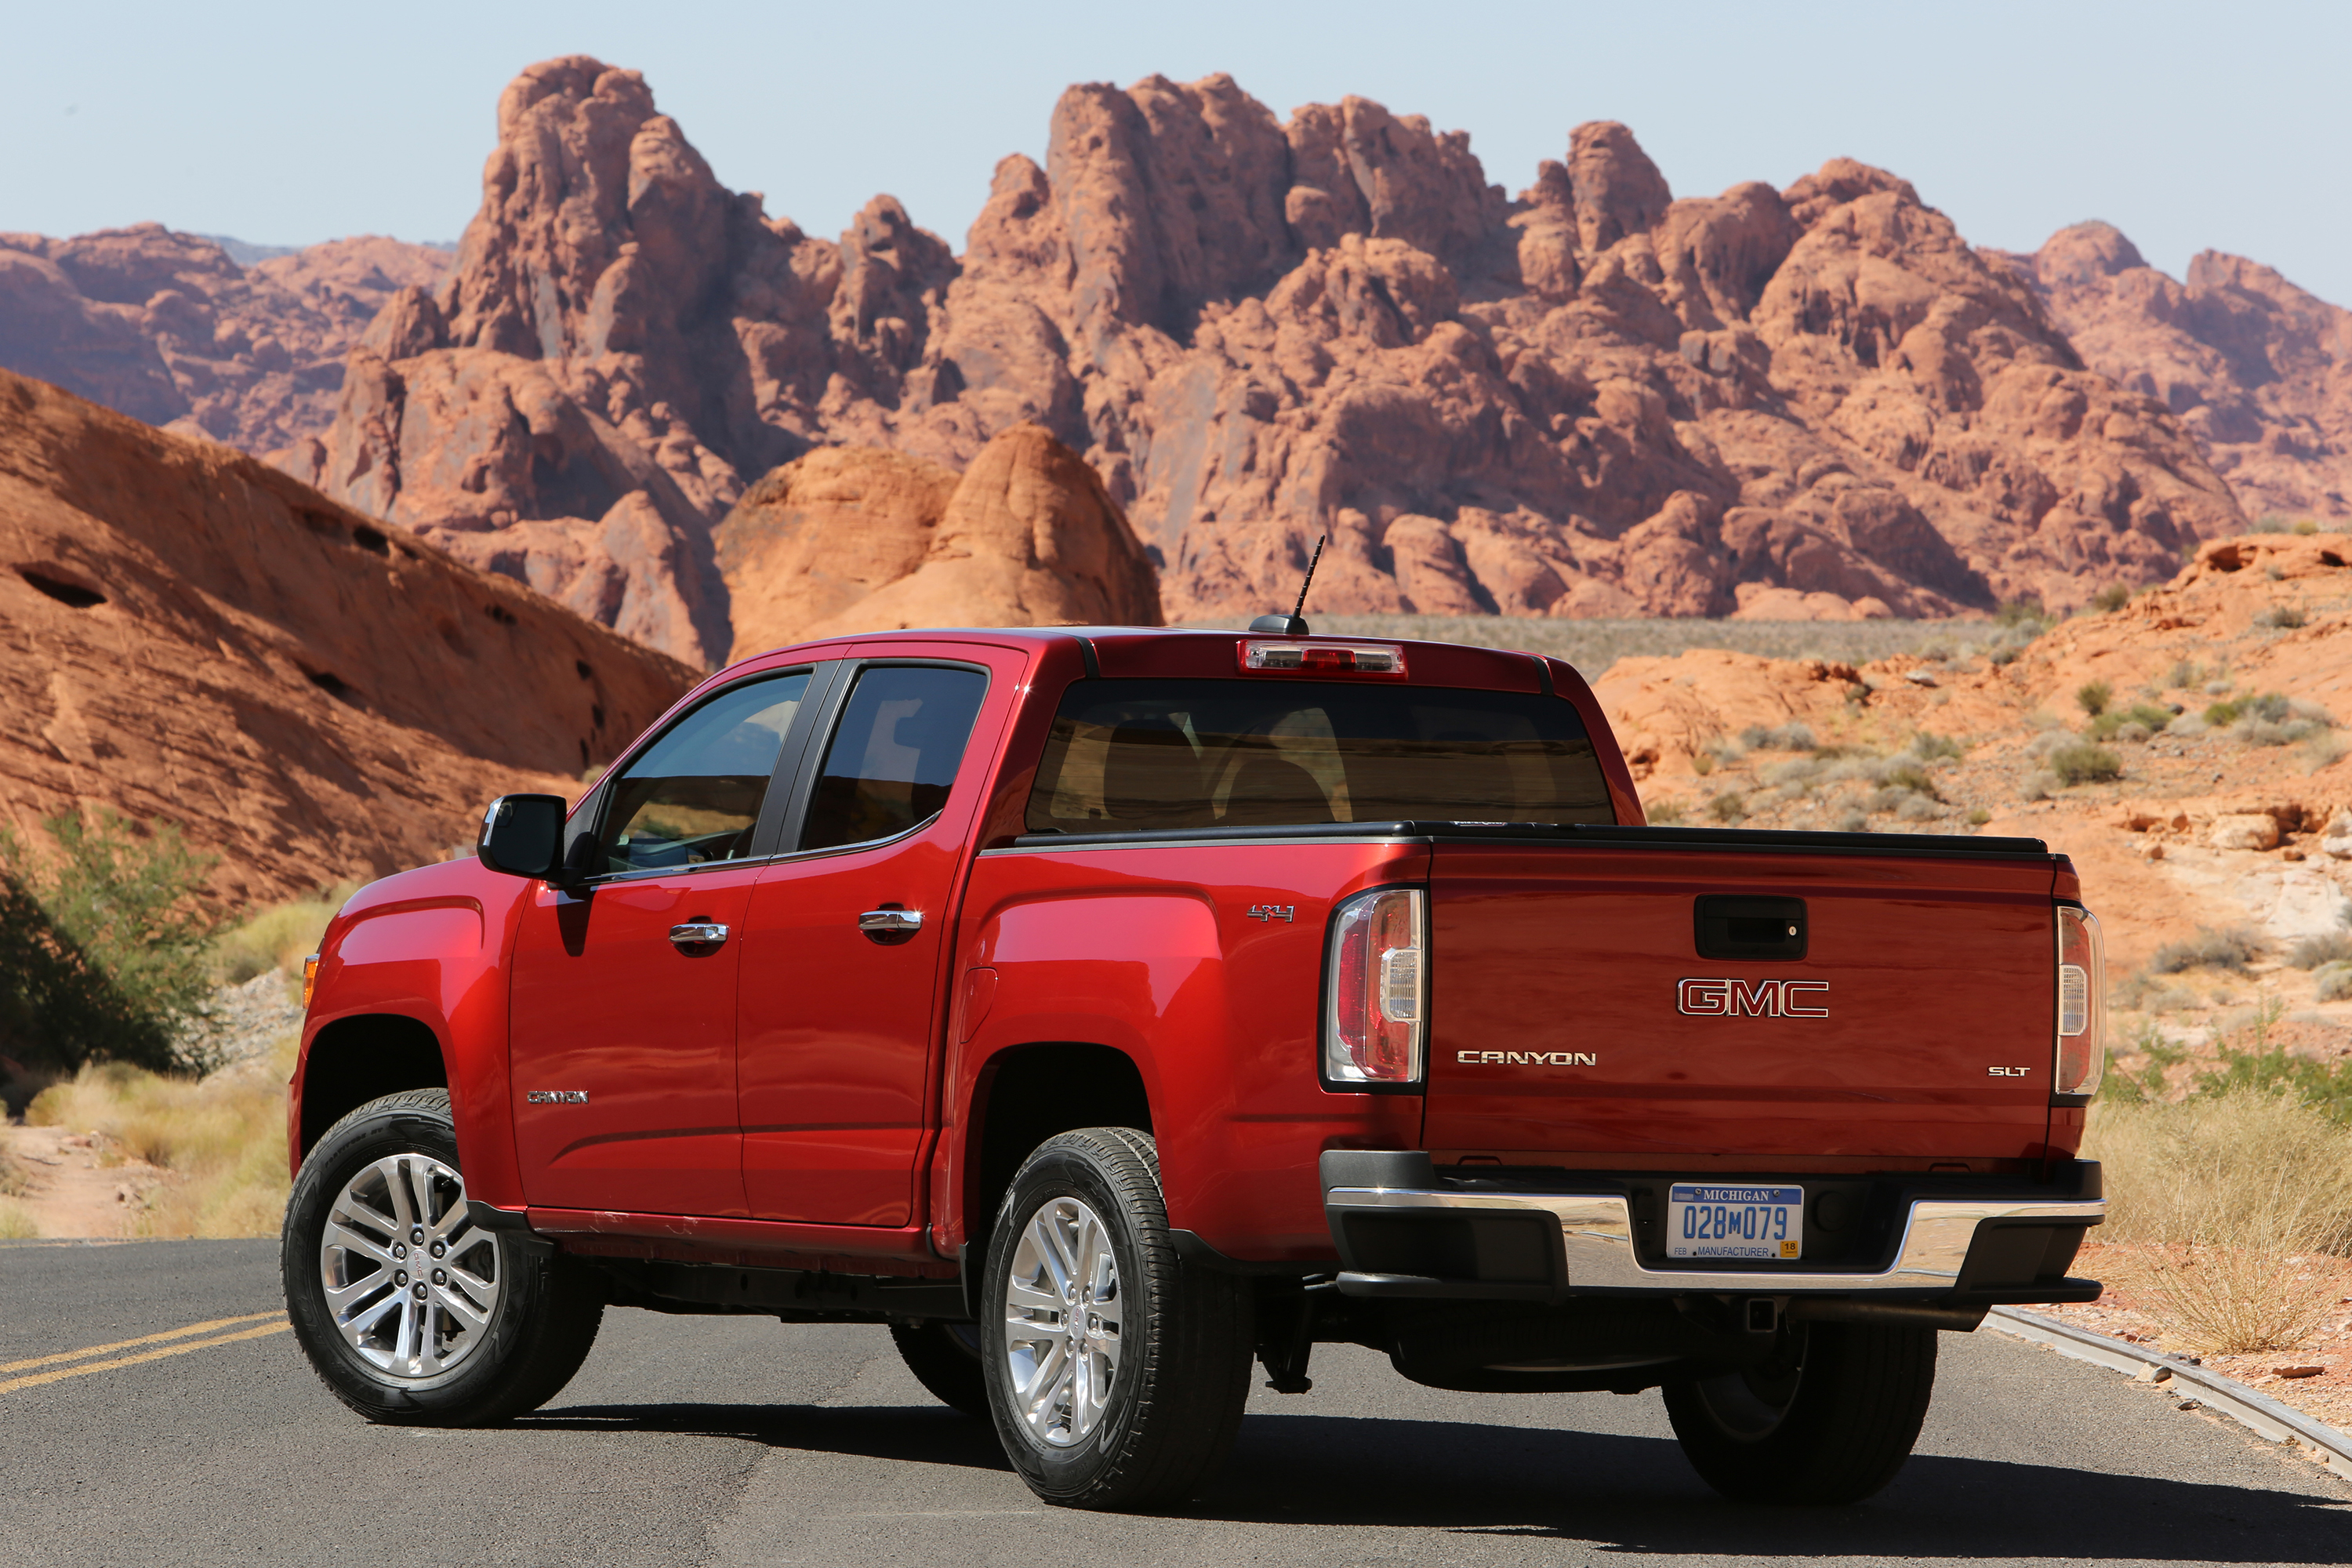 news pickup gmcs guys in media en above content download pages good photo drive gmc hollywood truck the detail movies us feb